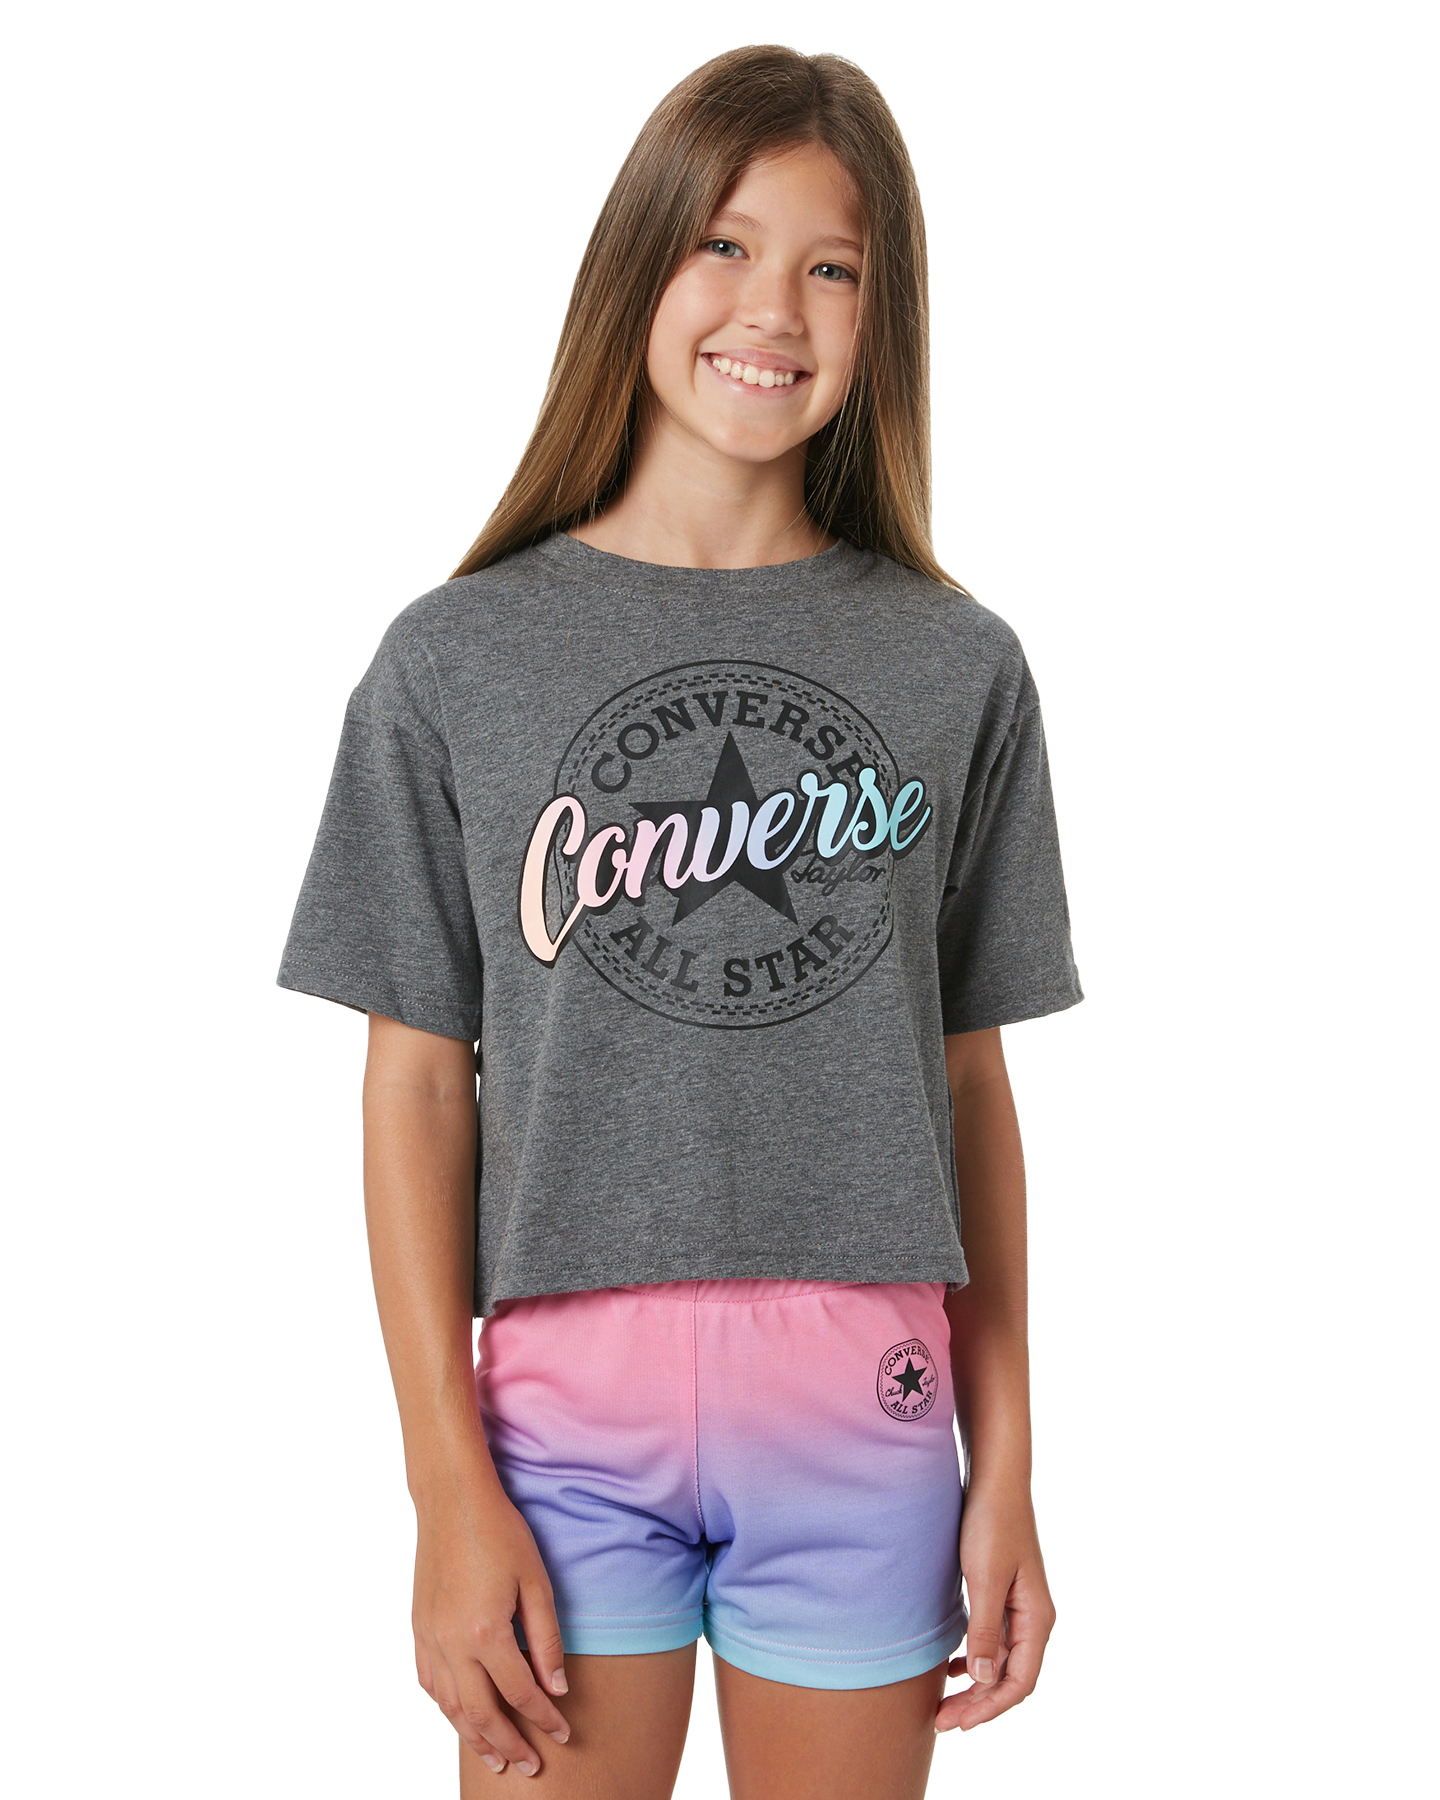 Converse Girls Short Sleeve Tulip Hem Graphic T-Shirt - Teens Charcoal Hacci Charcoal Hacci